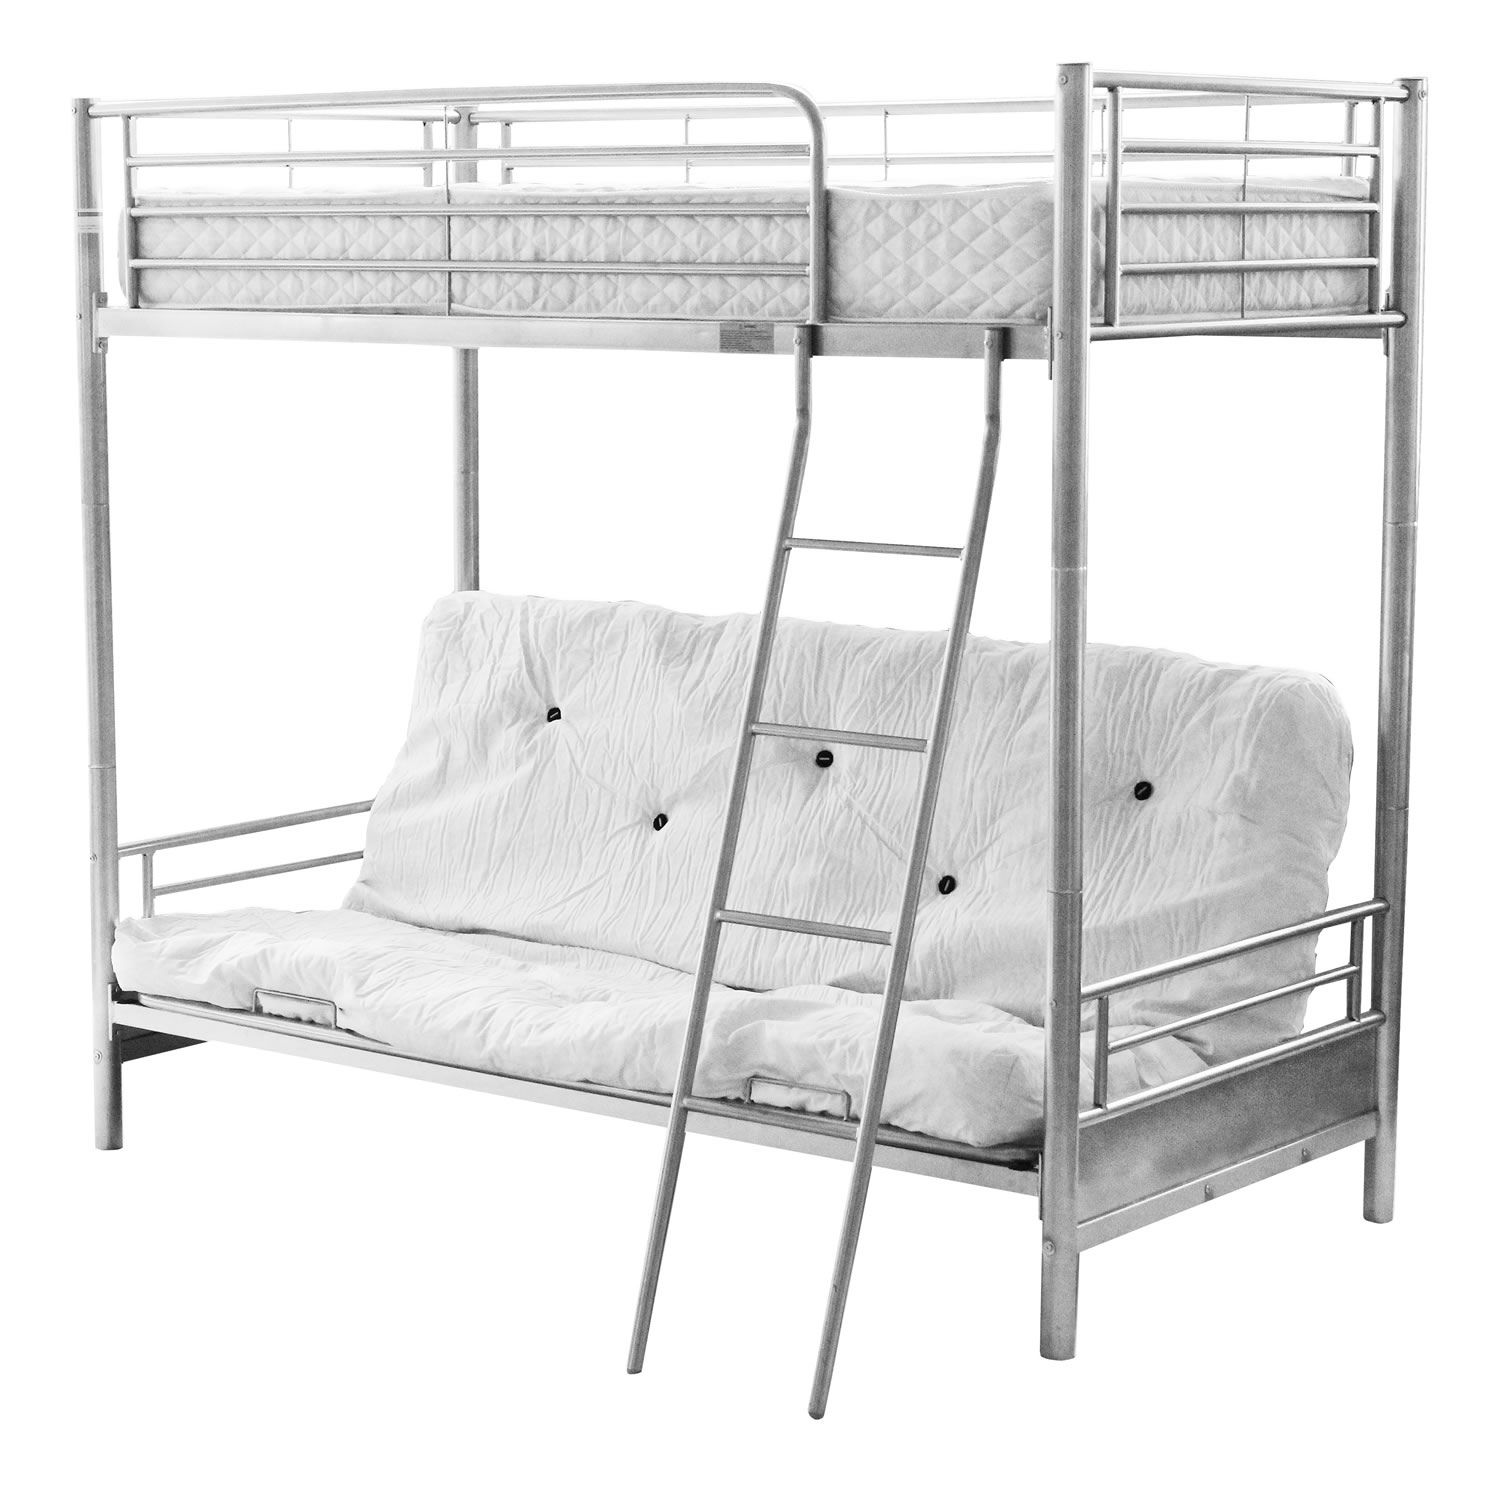 Metal Frame Bunk Bed With Futon Interior Paint Colors 2017 Check More At Http